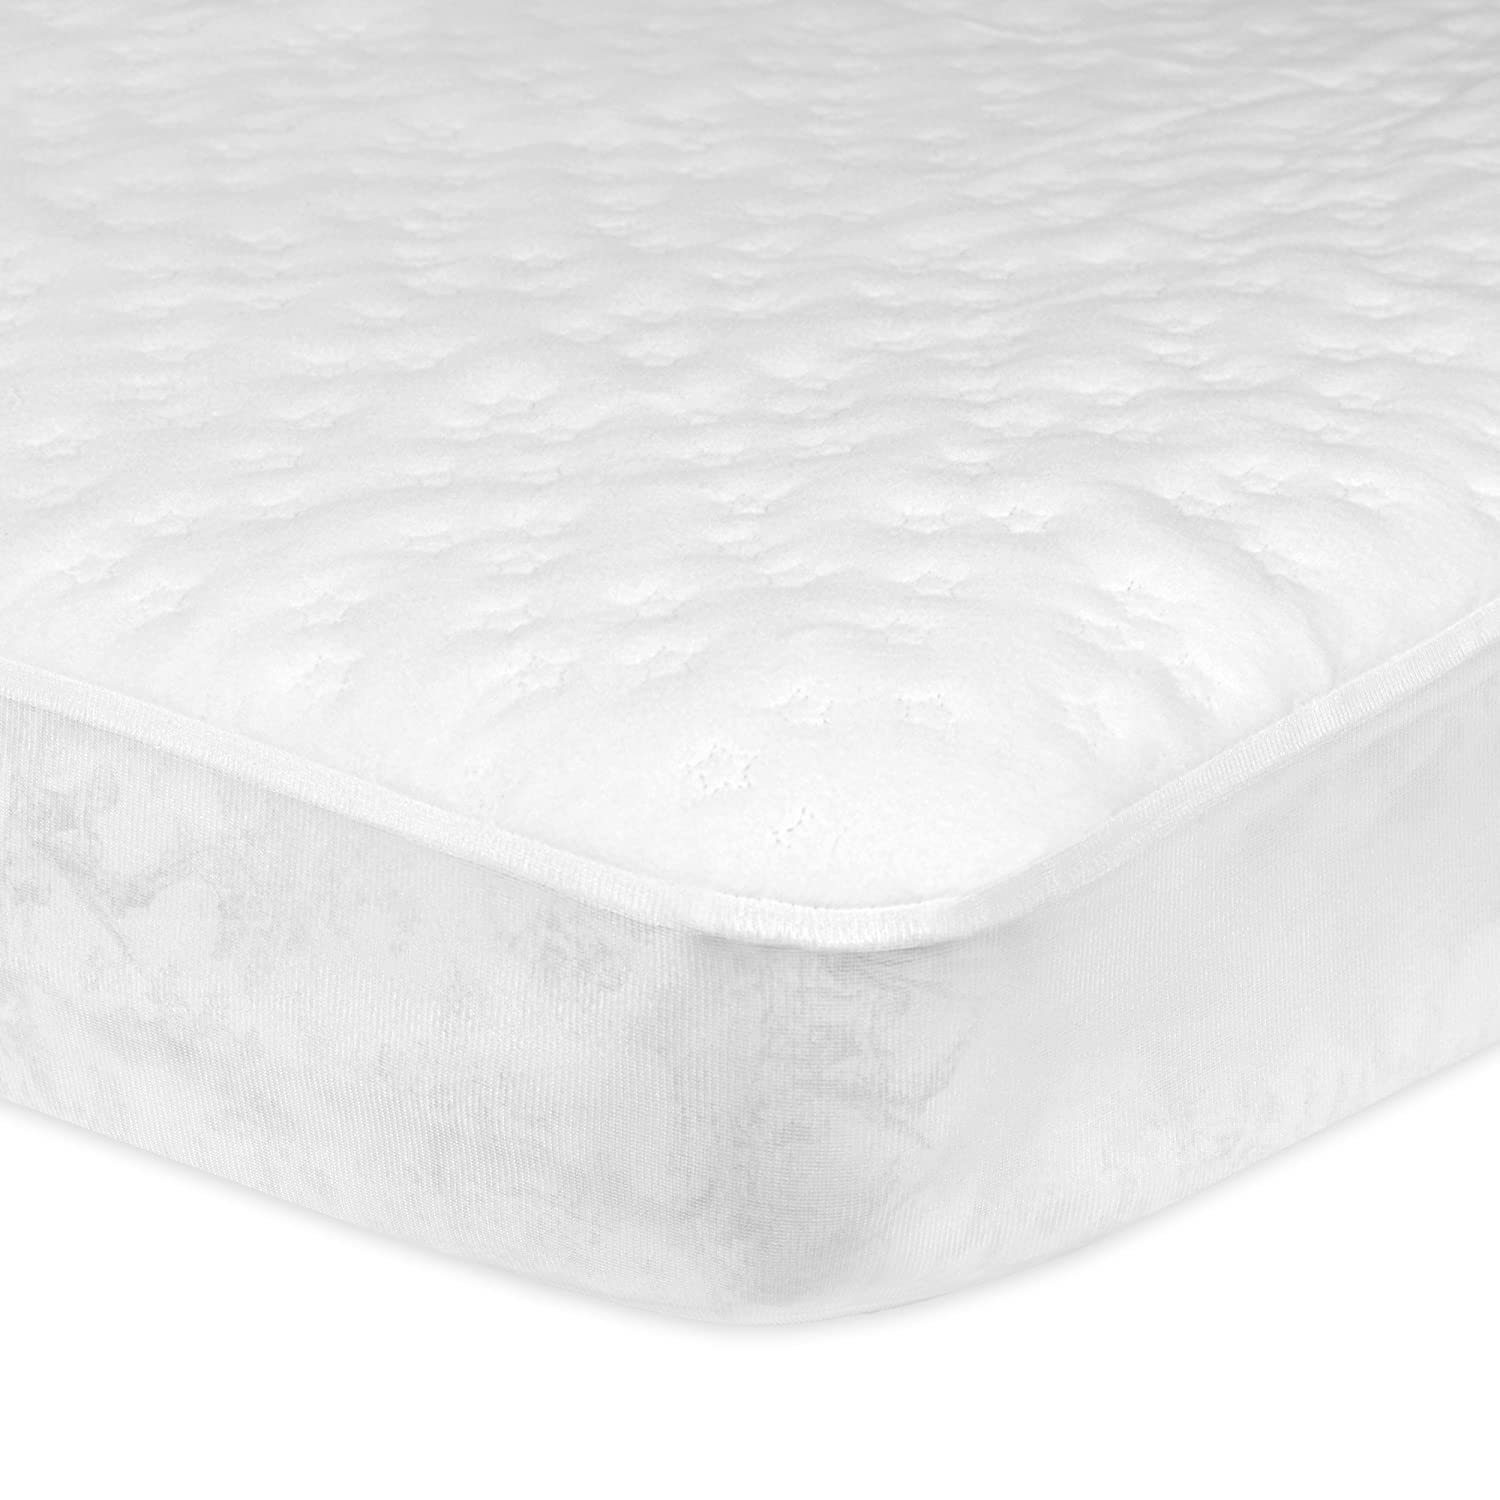 Gerber Fitted Crib Pad with Waterproof Barrier, White, 28